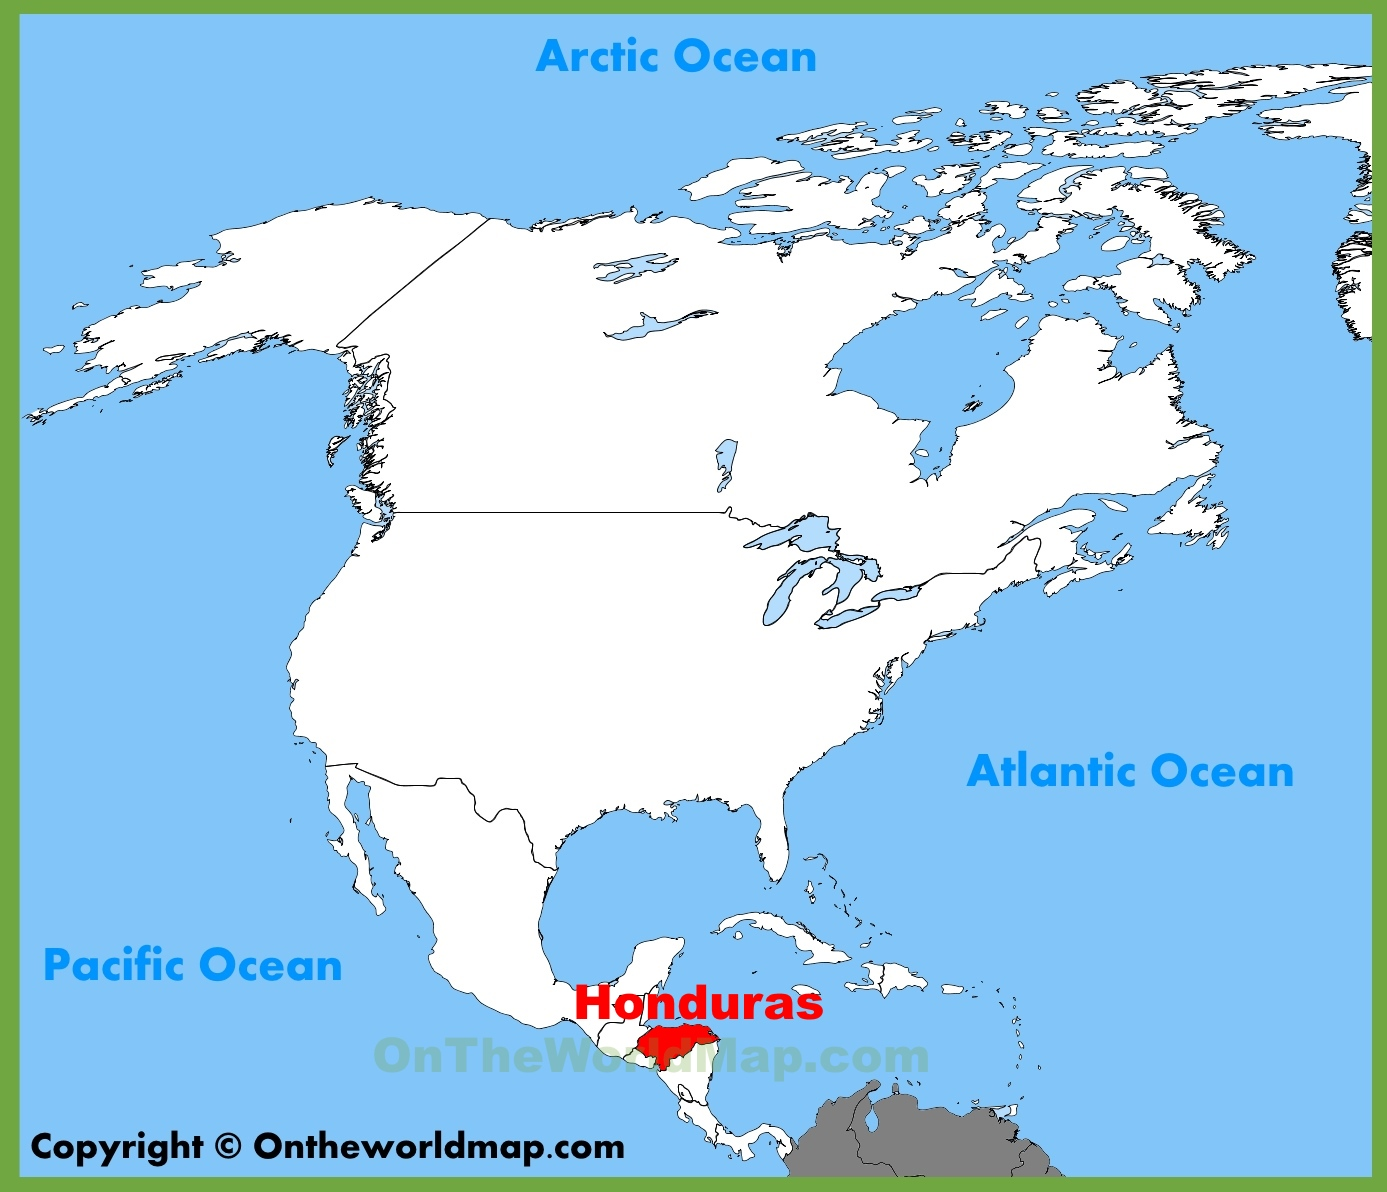 Honduras Location On The North America Map - Hondurus map